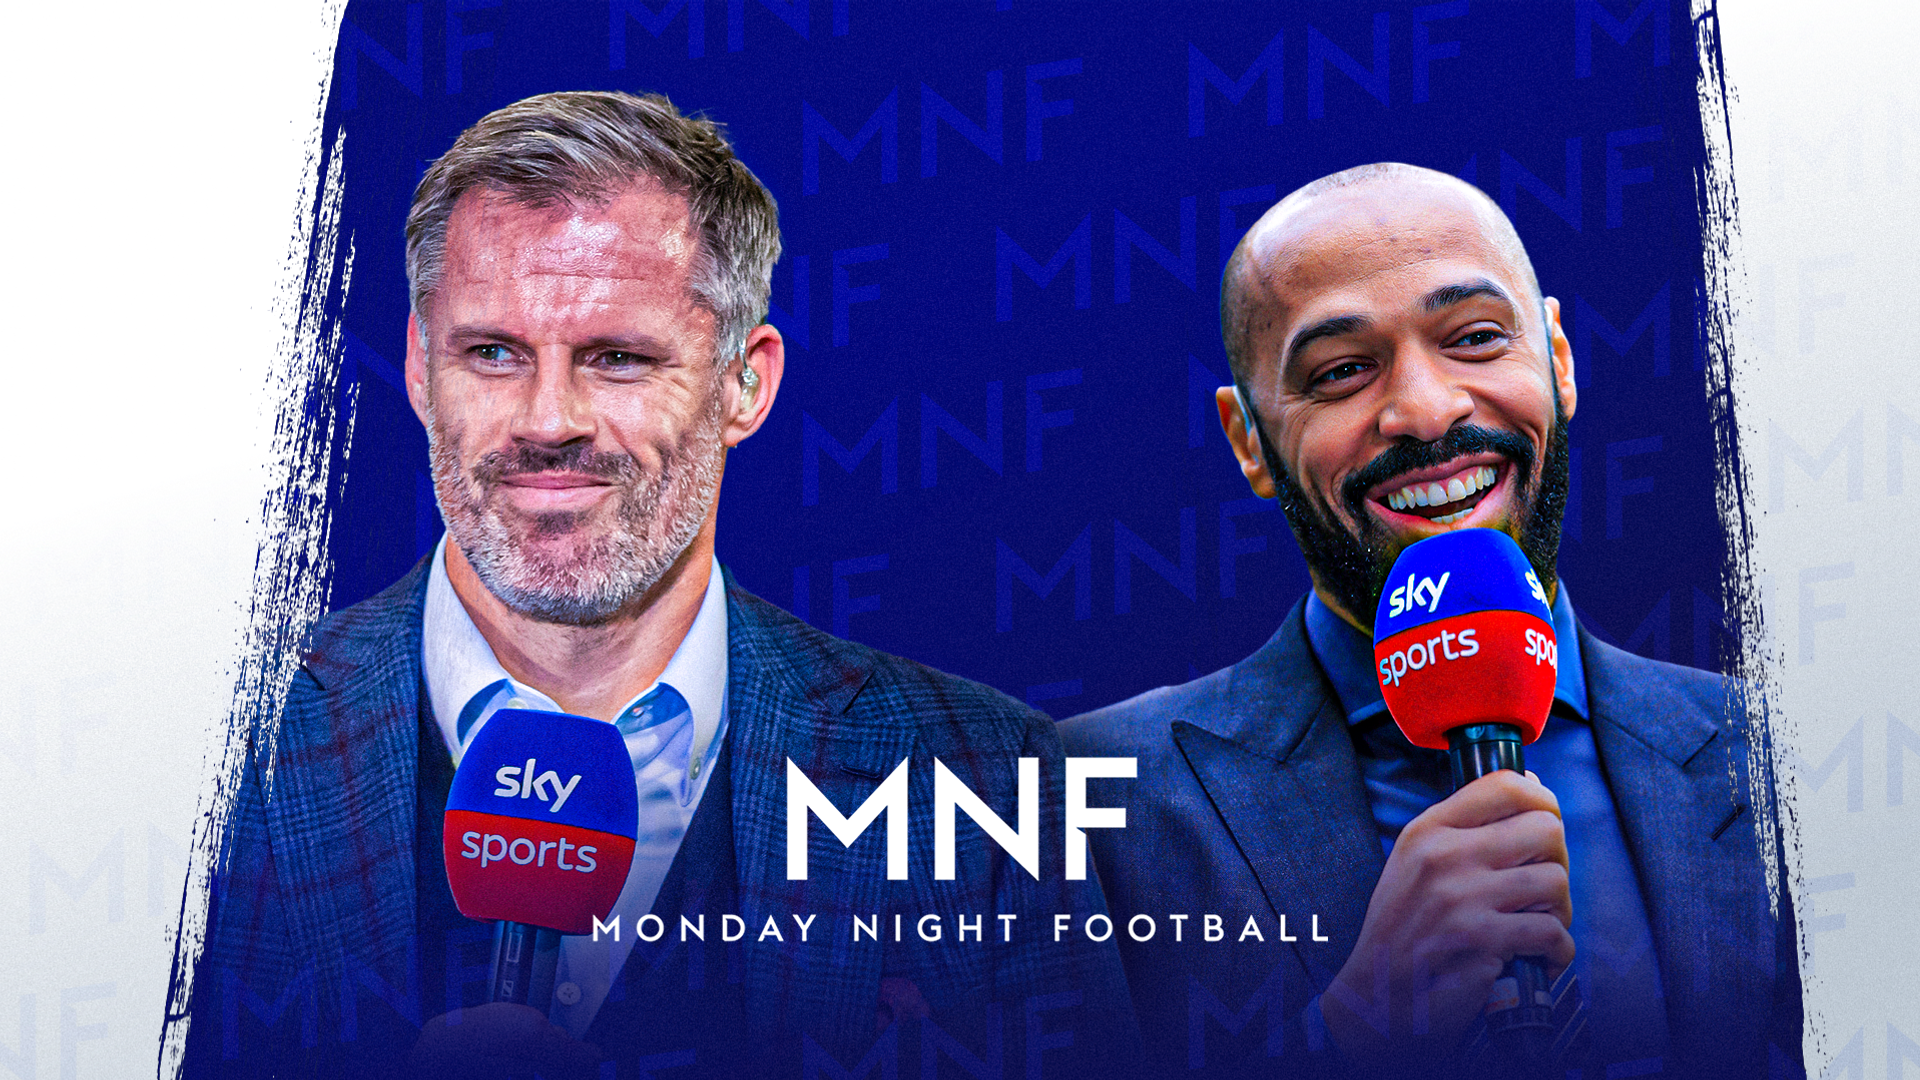 Thierry Henry joins Carra on MNF